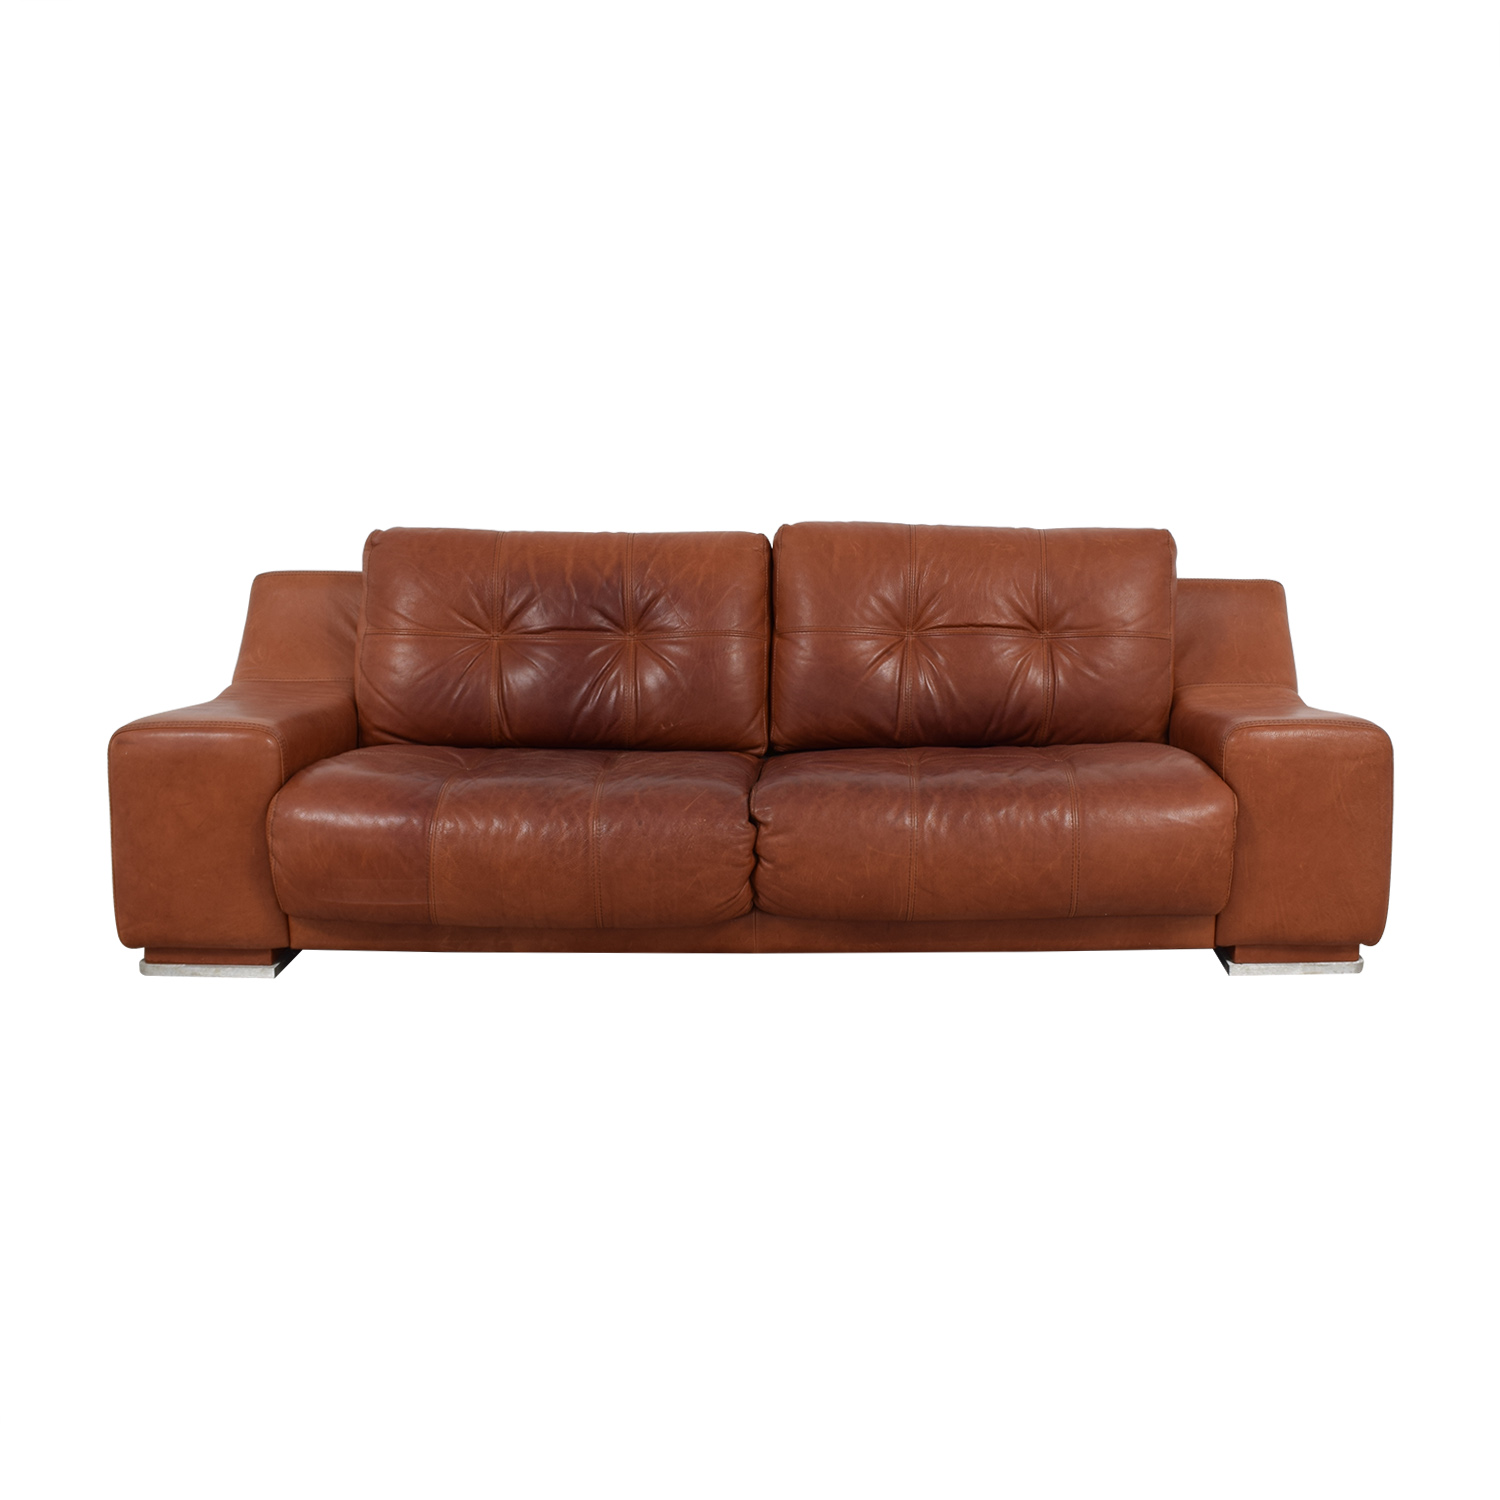 Shop Leather Sofa Quality Furniture On Sale